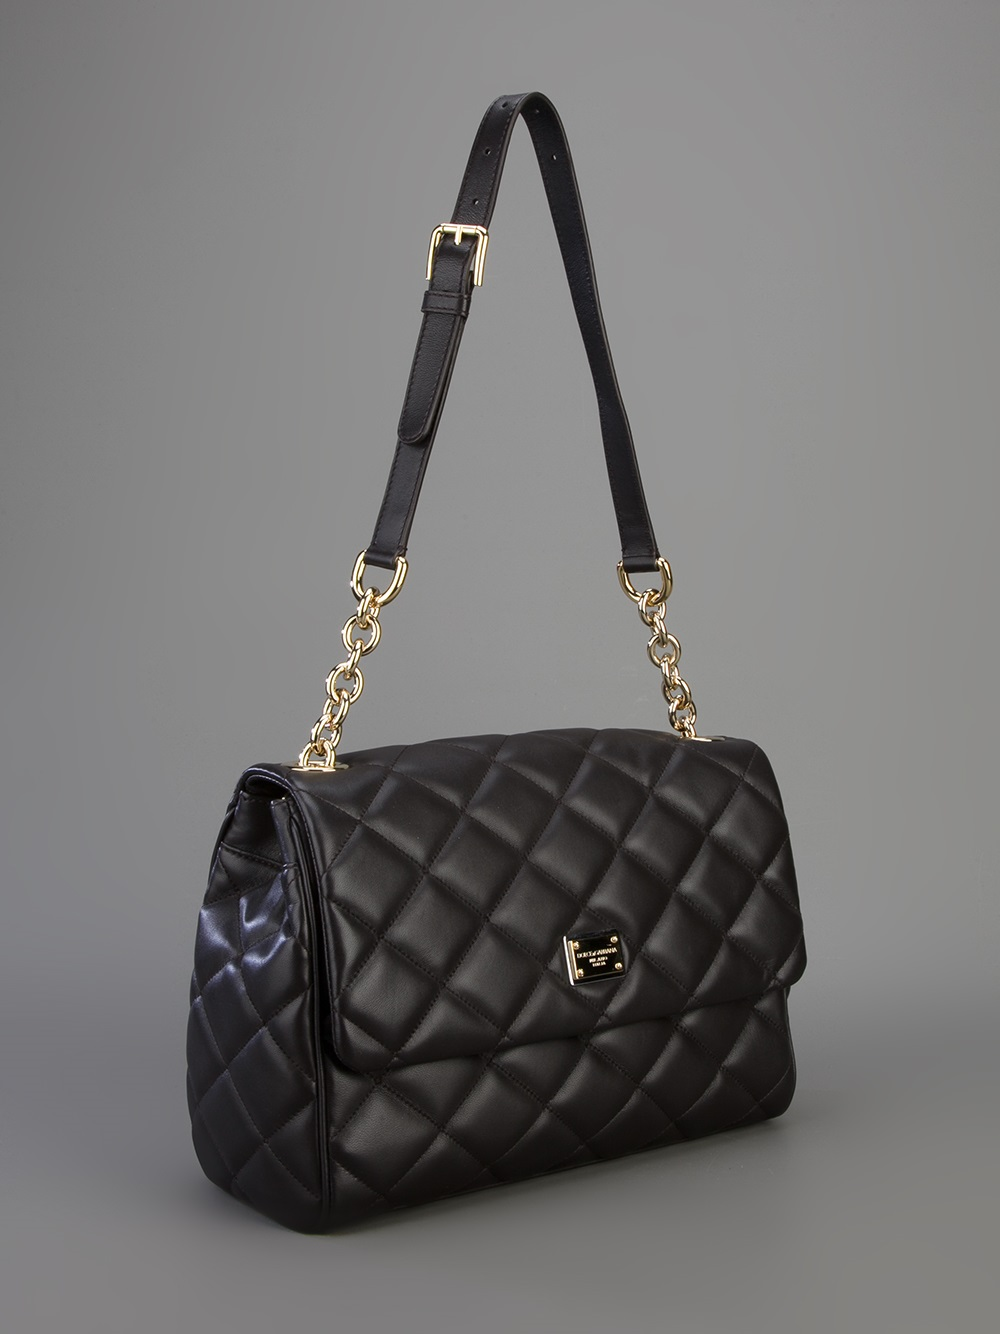 19da400aea48 Dolce   Gabbana Quilted Leather Shoulder Bag in Black - Lyst